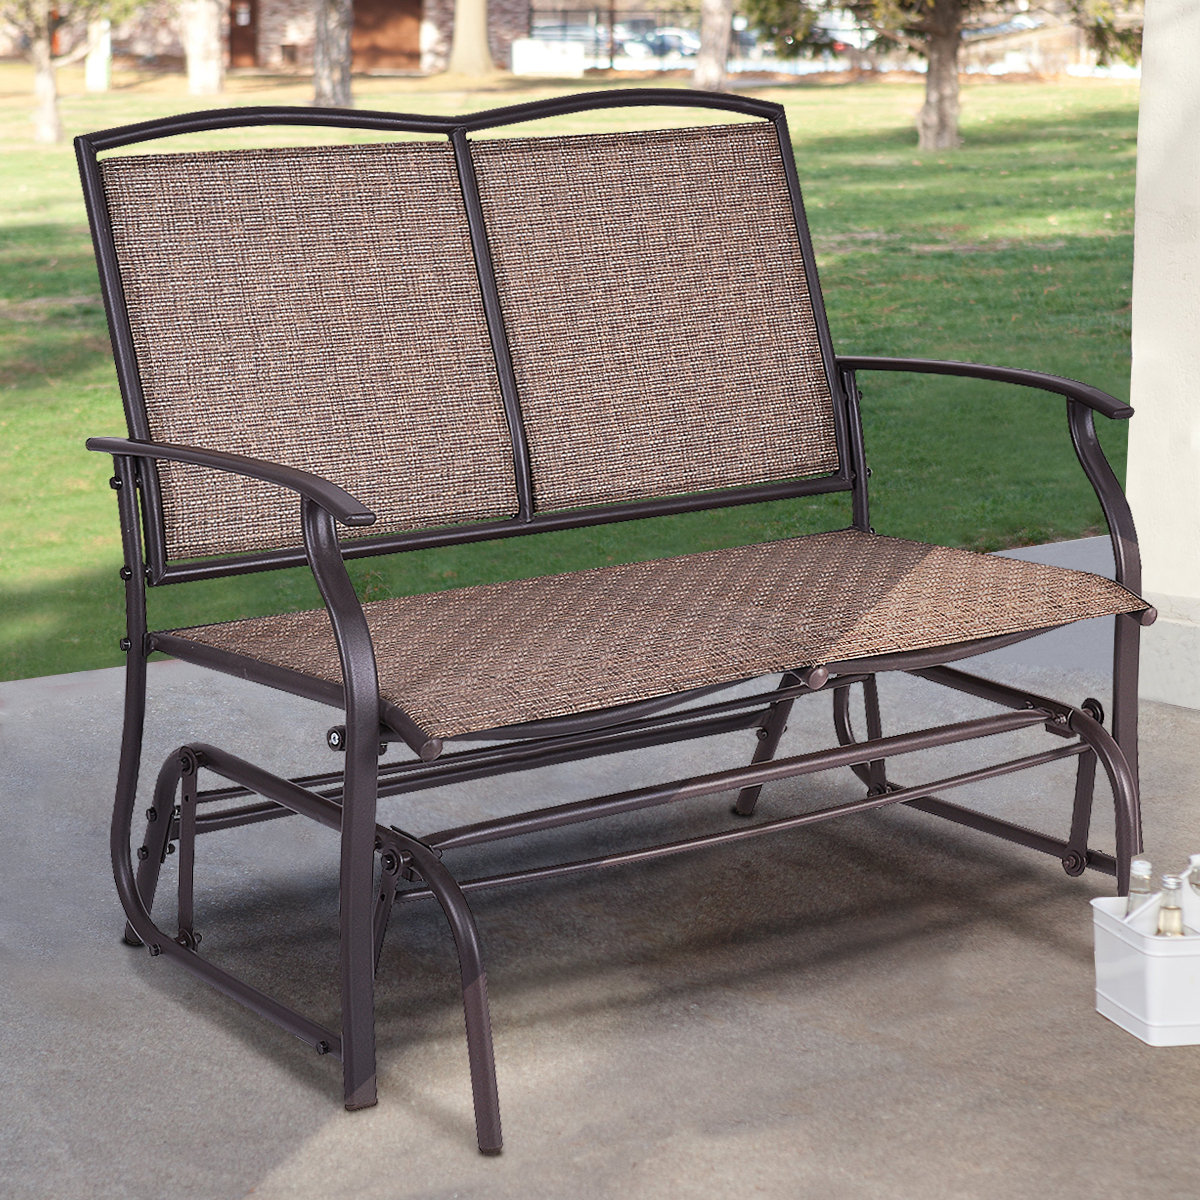 Costway Patio Glider Rocking Bench Double 2 Person Chair Loveseat Armchair  Backyard – Walmart Intended For 2 Person Antique Black Iron Outdoor Gliders (Image 5 of 25)